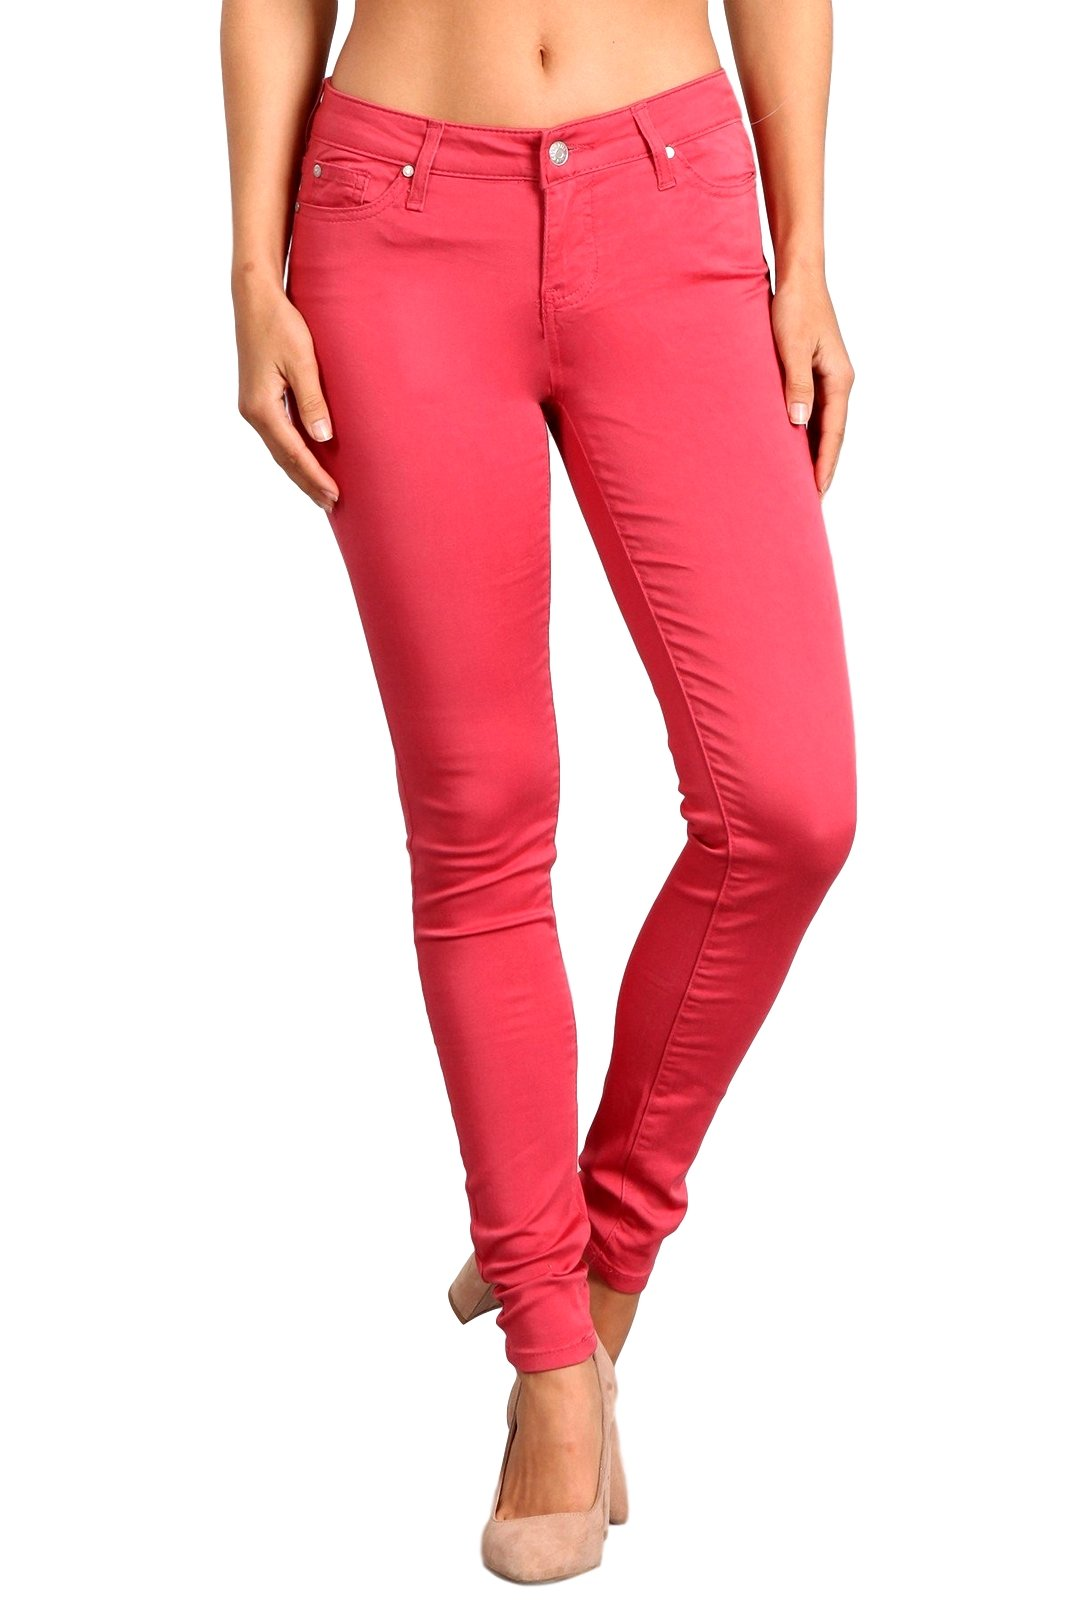 Celebrity Pink Women's Mid Rise Colored Skinny Pants Rose Petal  CJ21038Z35-RS